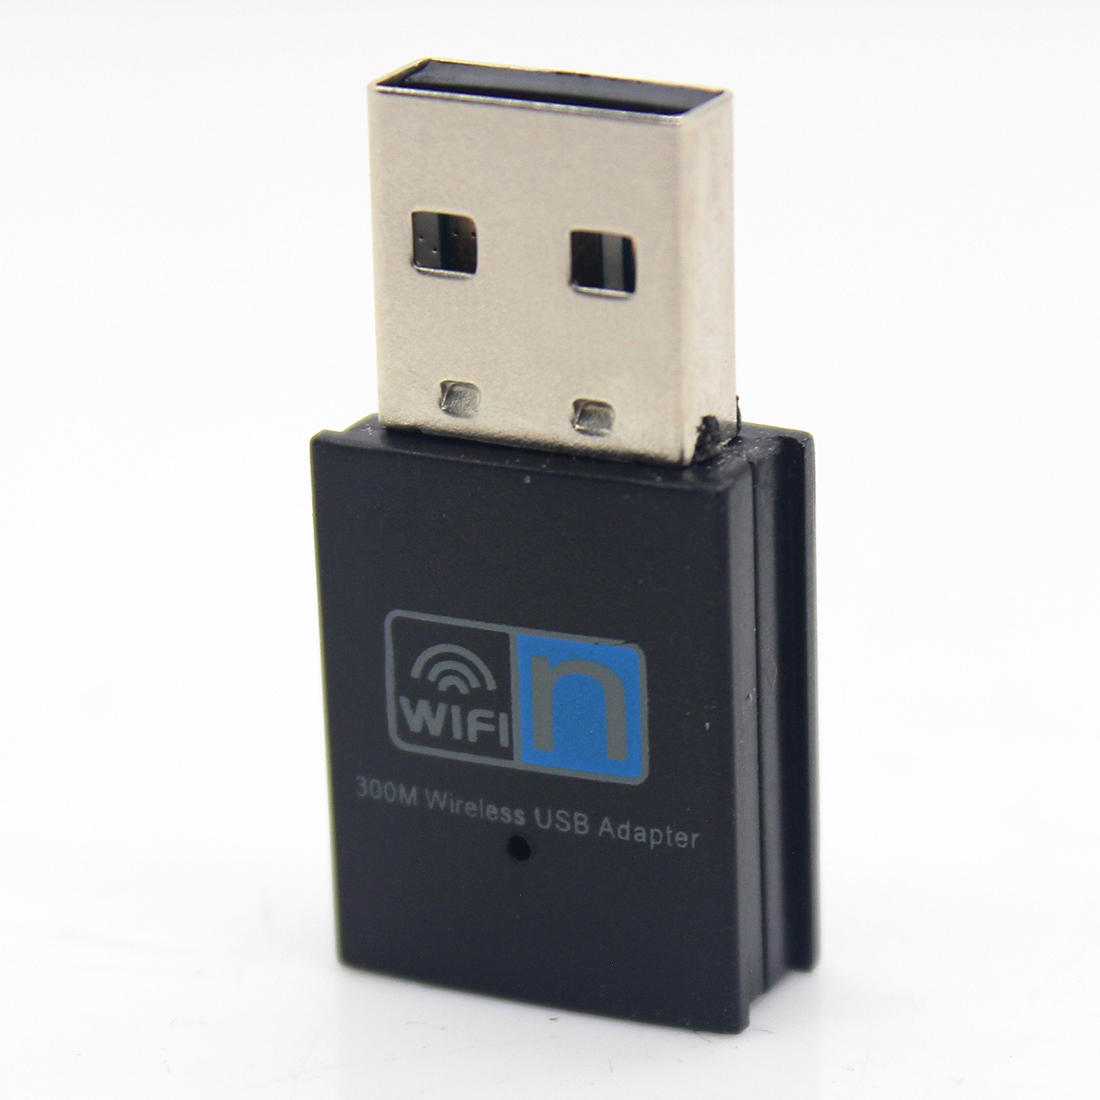 NOYOKERE Mini 300M USB2.0 RTL8192 Wifi dongle WiFi adapter Wireless wifi dongle Network Card 802.11 n/g/b wi fi LAN Adapter музыкальный центр micro panasonic sc pm250ee s